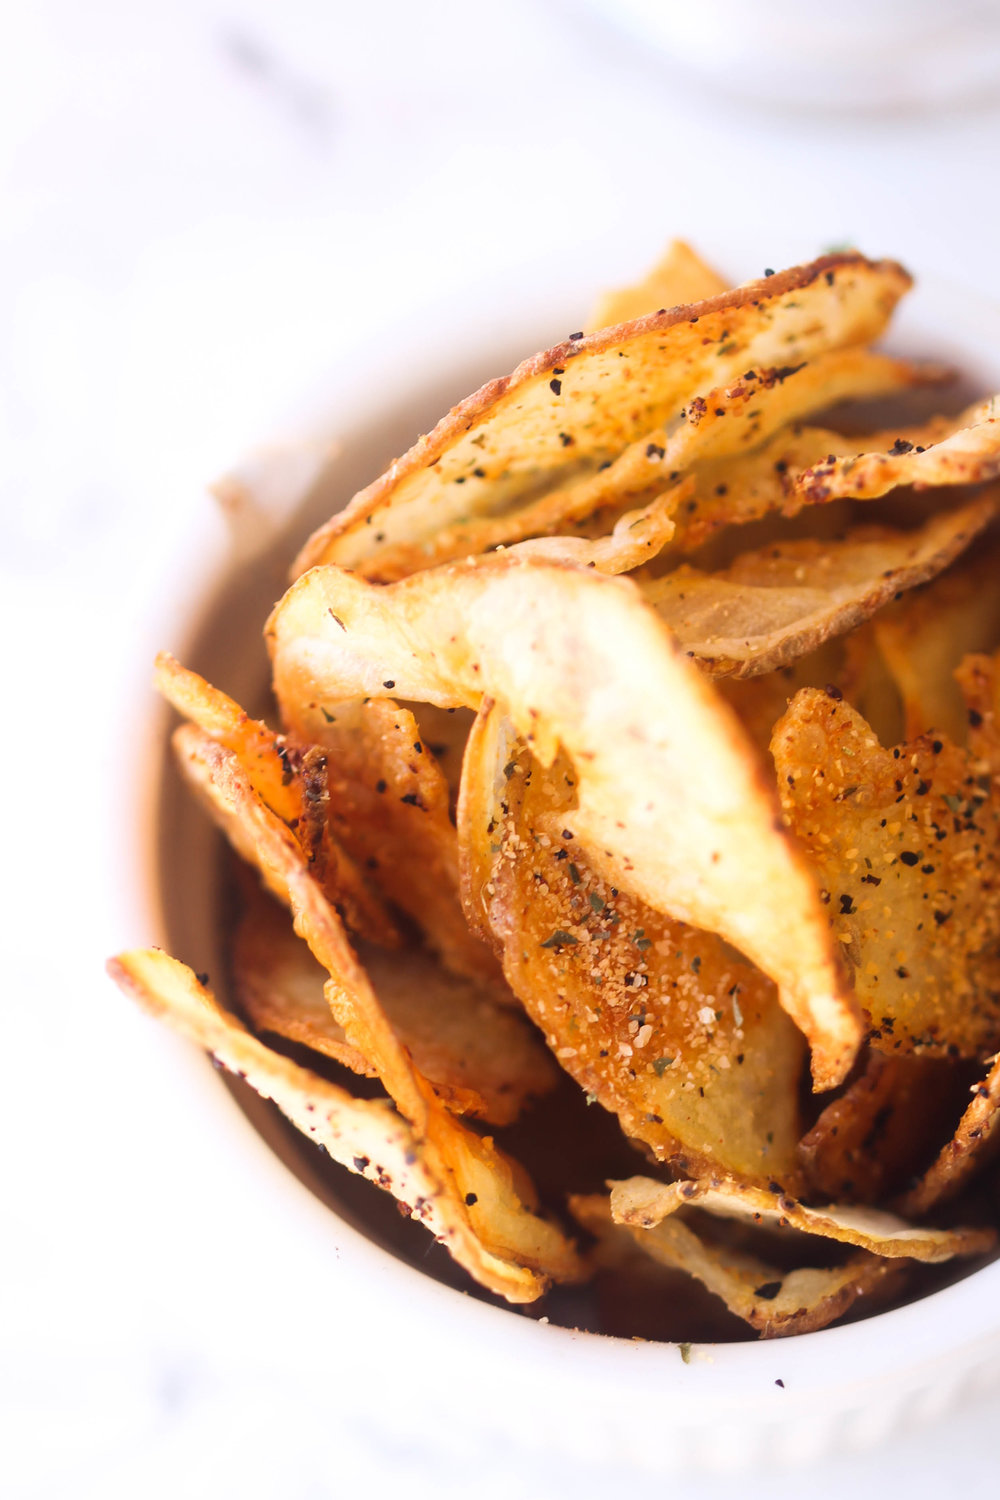 Crispy Baked Potato Chips are a healthier alternative to store-bought potato chips. They take 30 minutes or less and you can easily customize your spices.